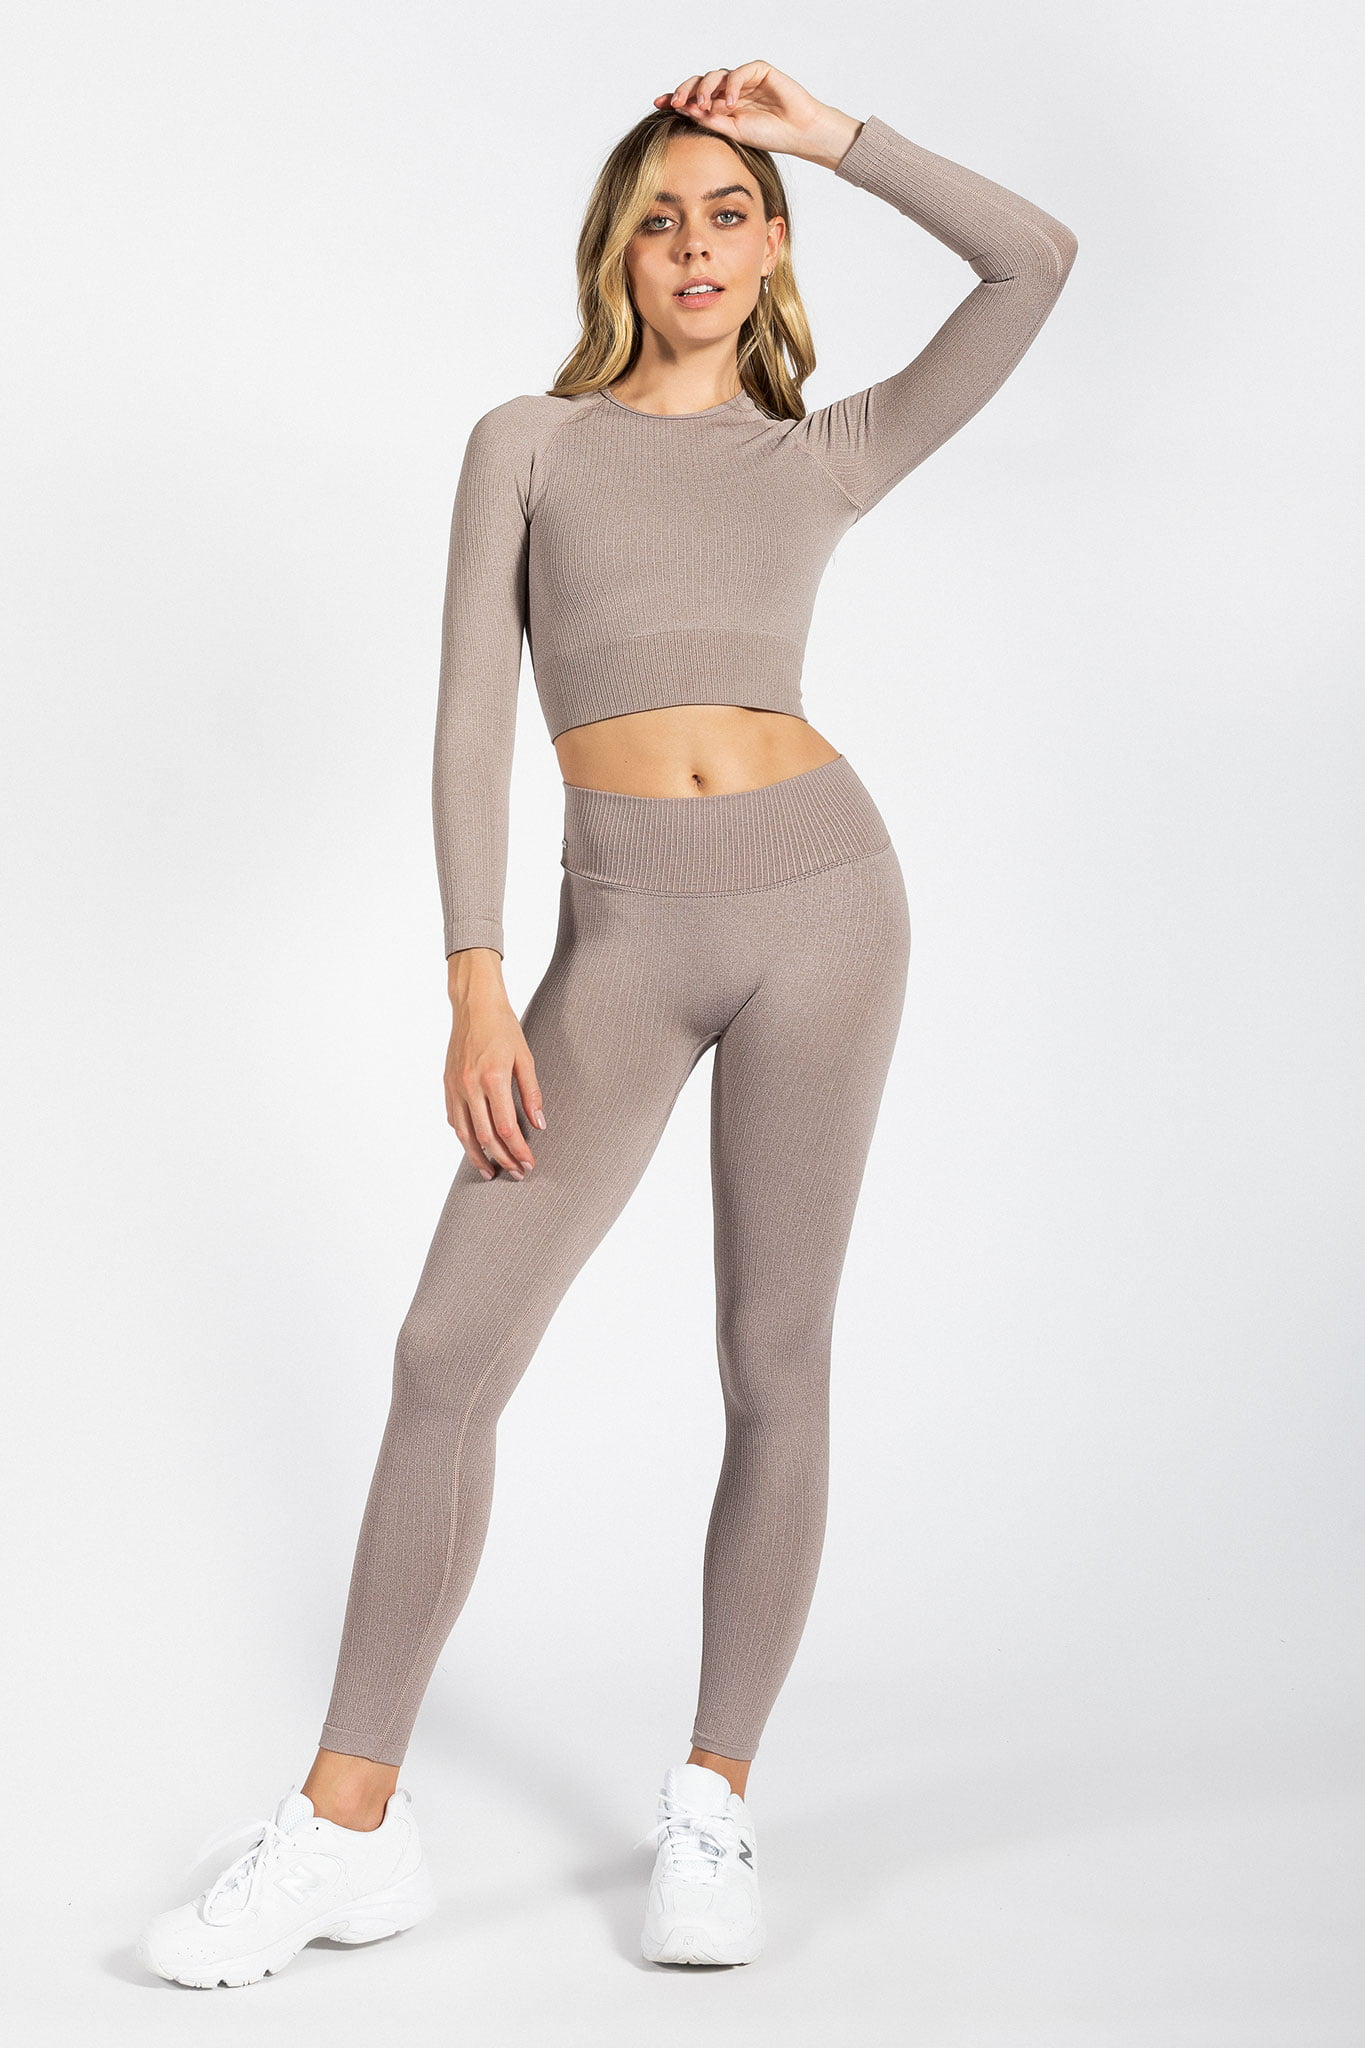 pretty girl wearing seamless high-waist yoga pant in light brown colour